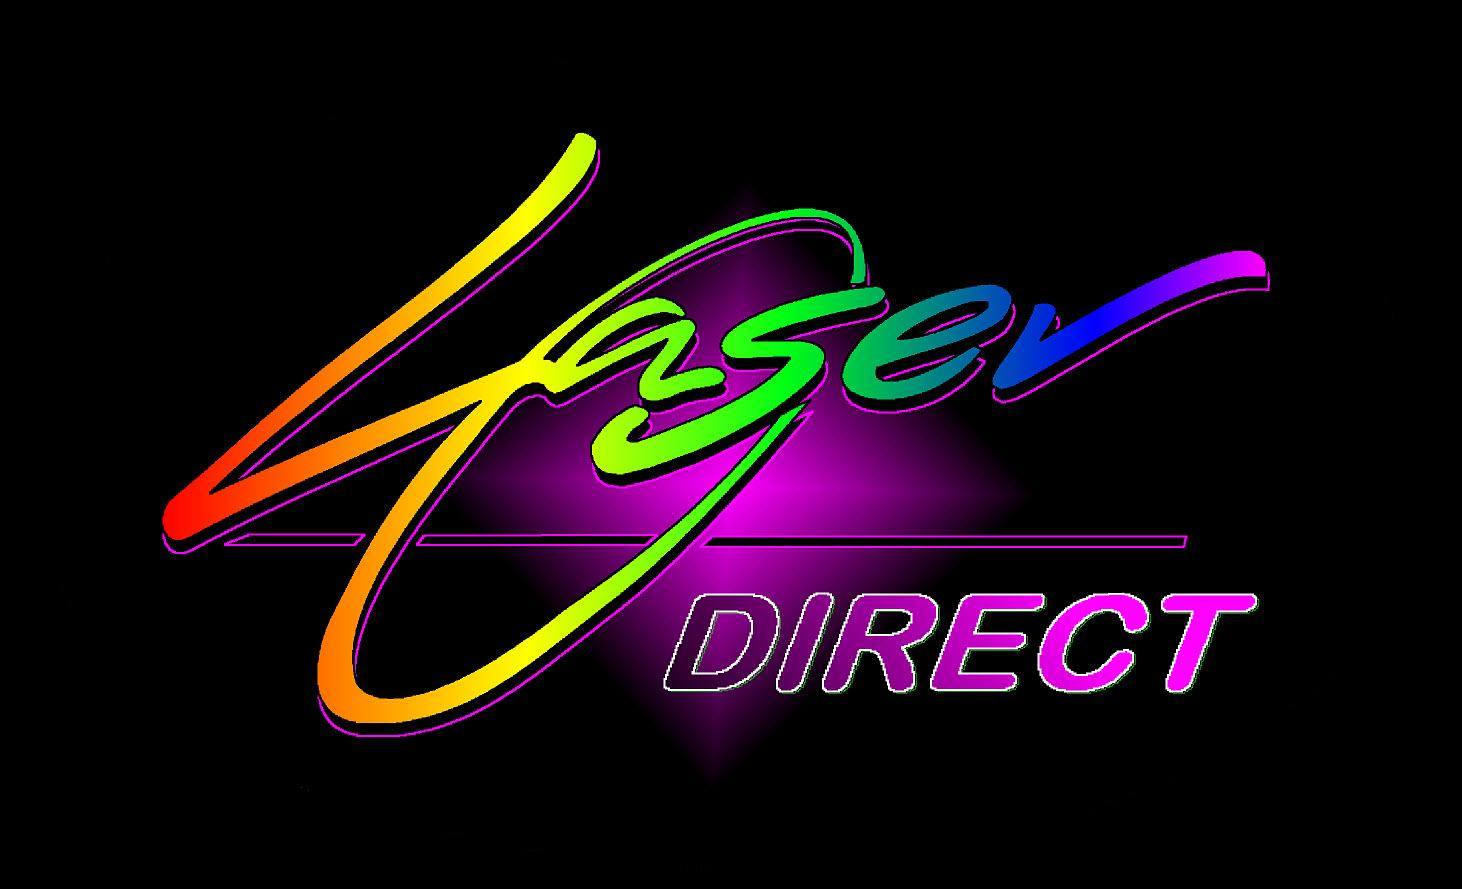 LASERDIRECT GLOW box